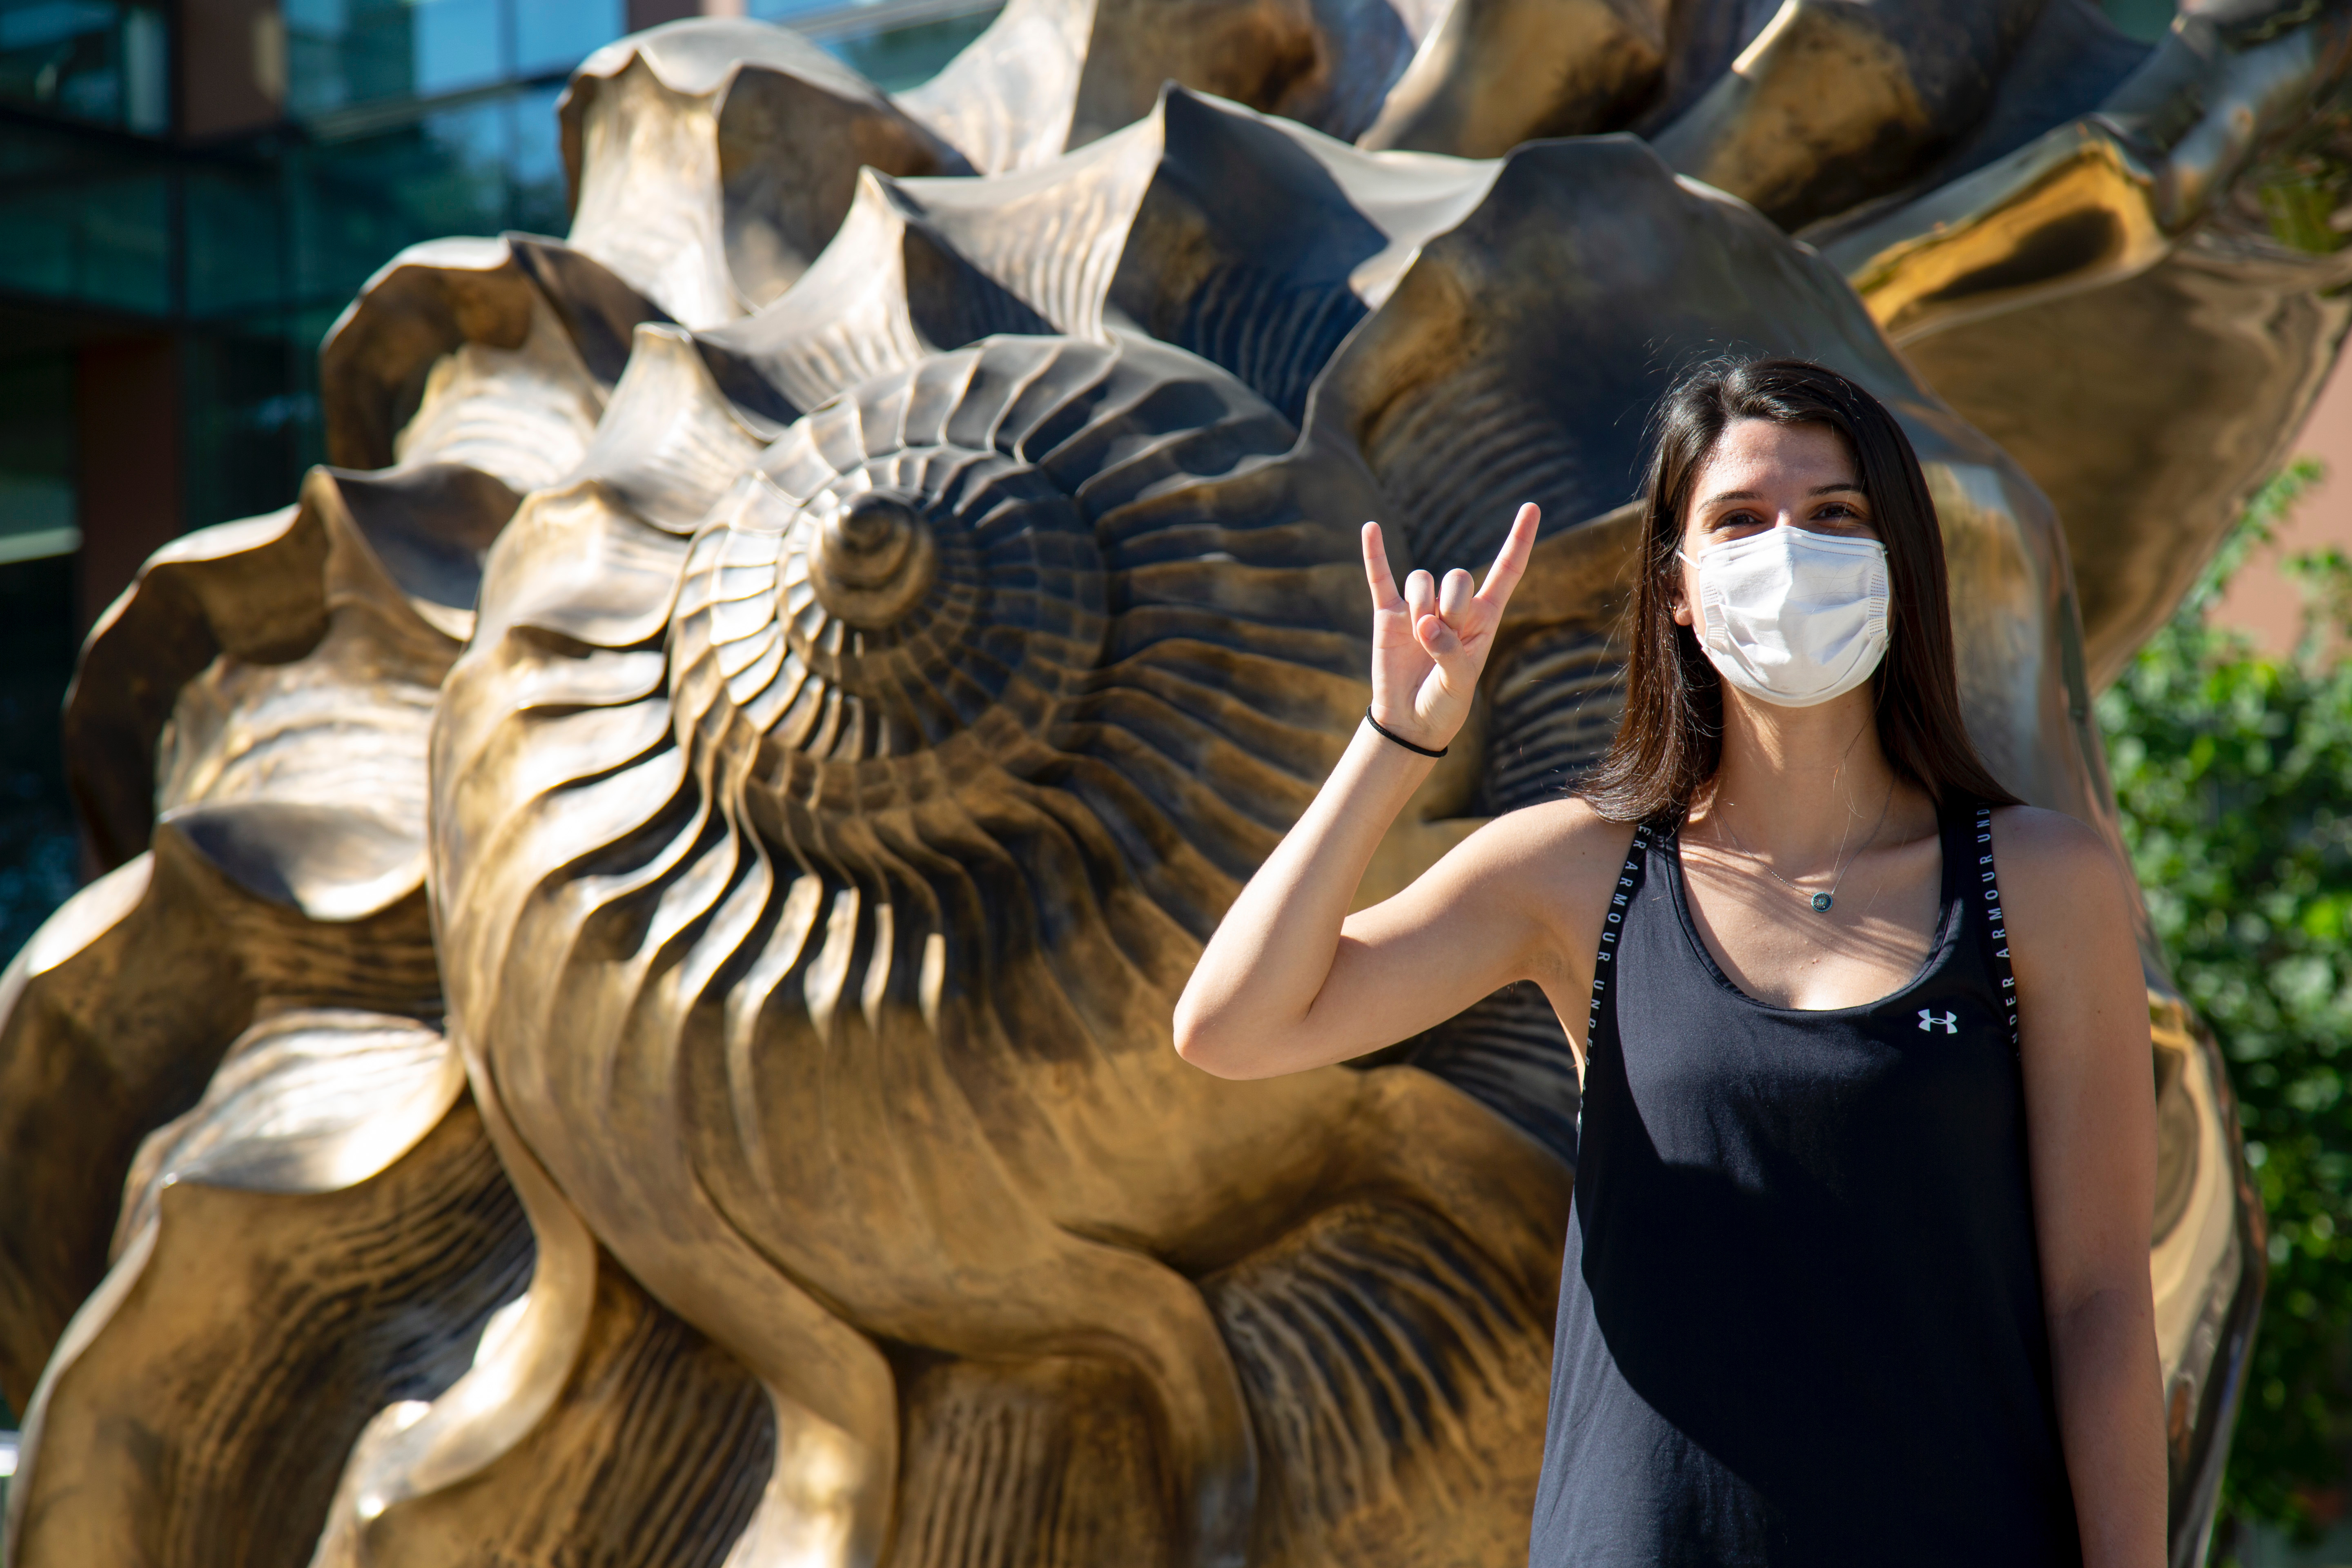 """A woman in a mask makes a """"hook em"""" gesture and looks at the camera in front of Marc Quinn's sculpture """"Spiral of the Galaxy"""" which is an enlarged bronze seashell"""